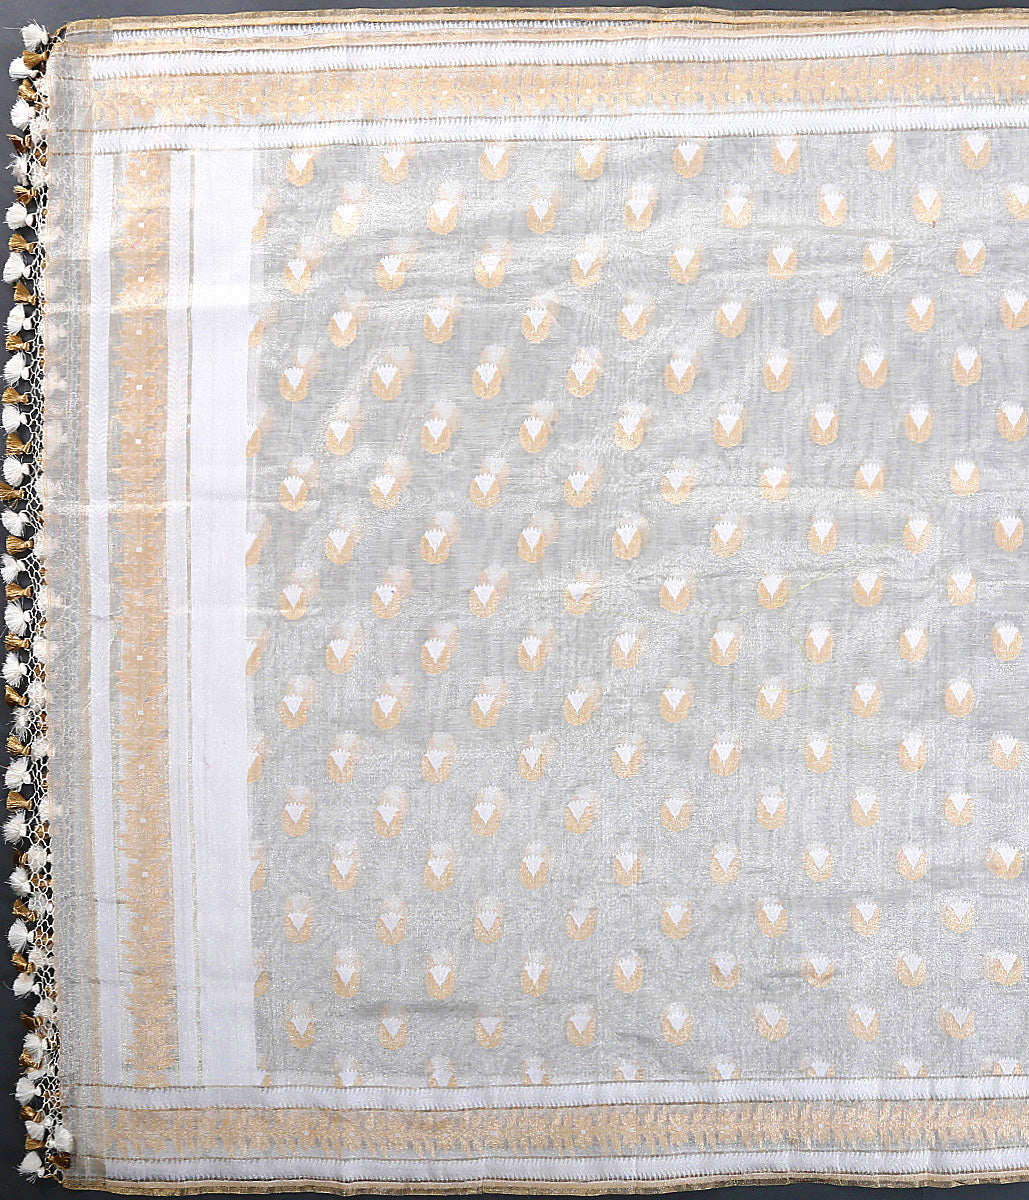 Offwhite and gold pure mulmul cotton dupatta with tissue weft